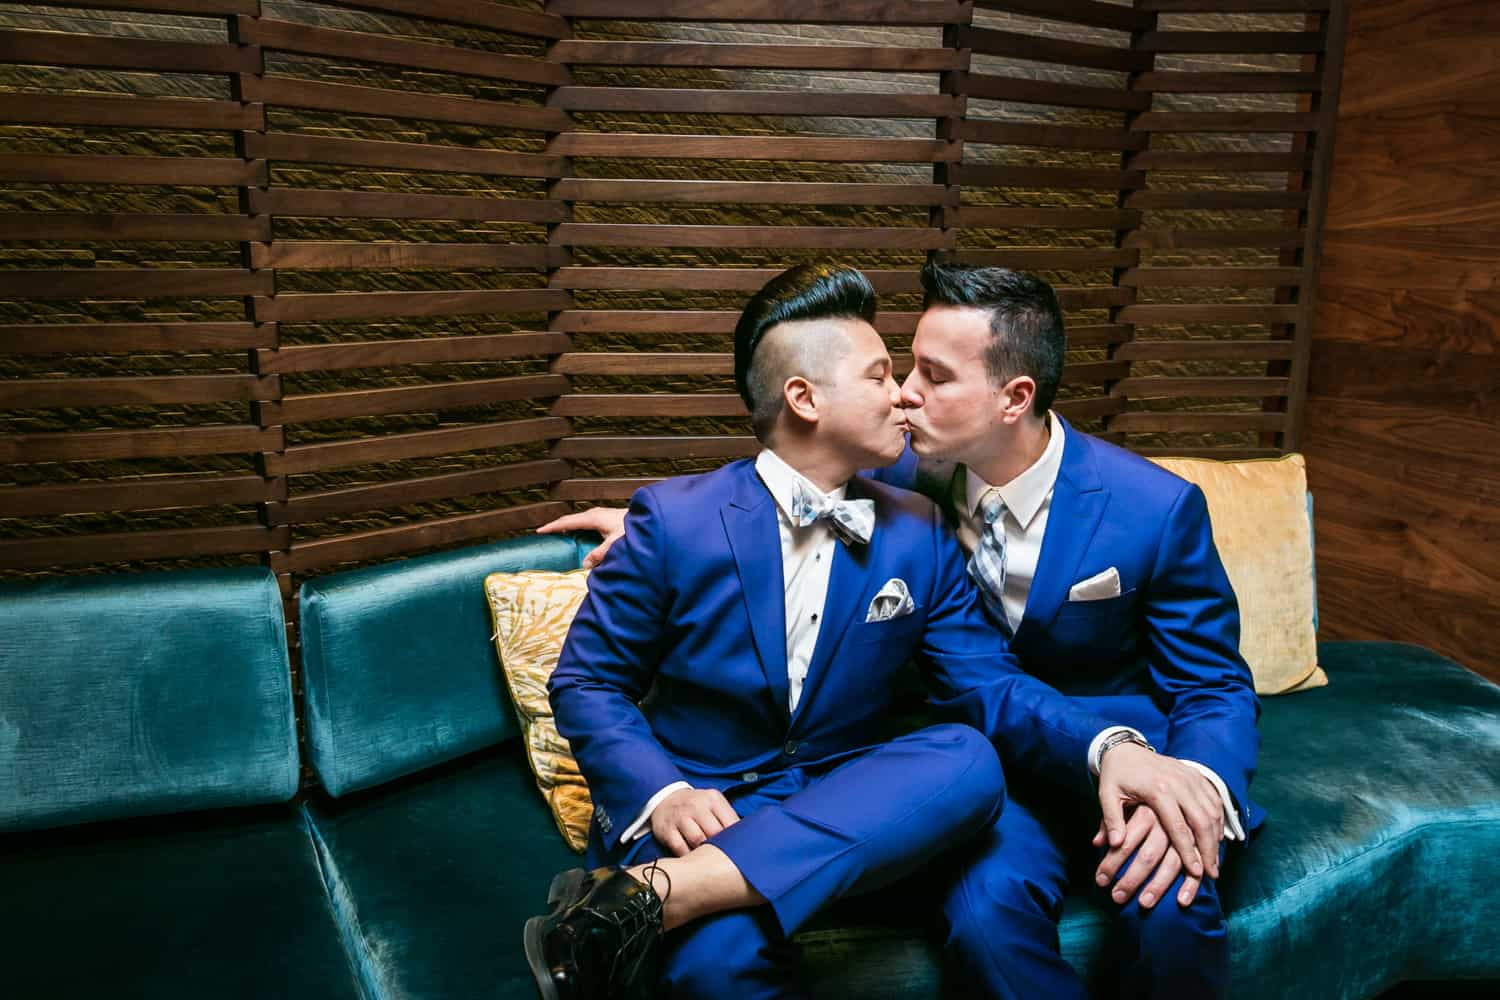 Two grooms in blue suits kissing on a couch